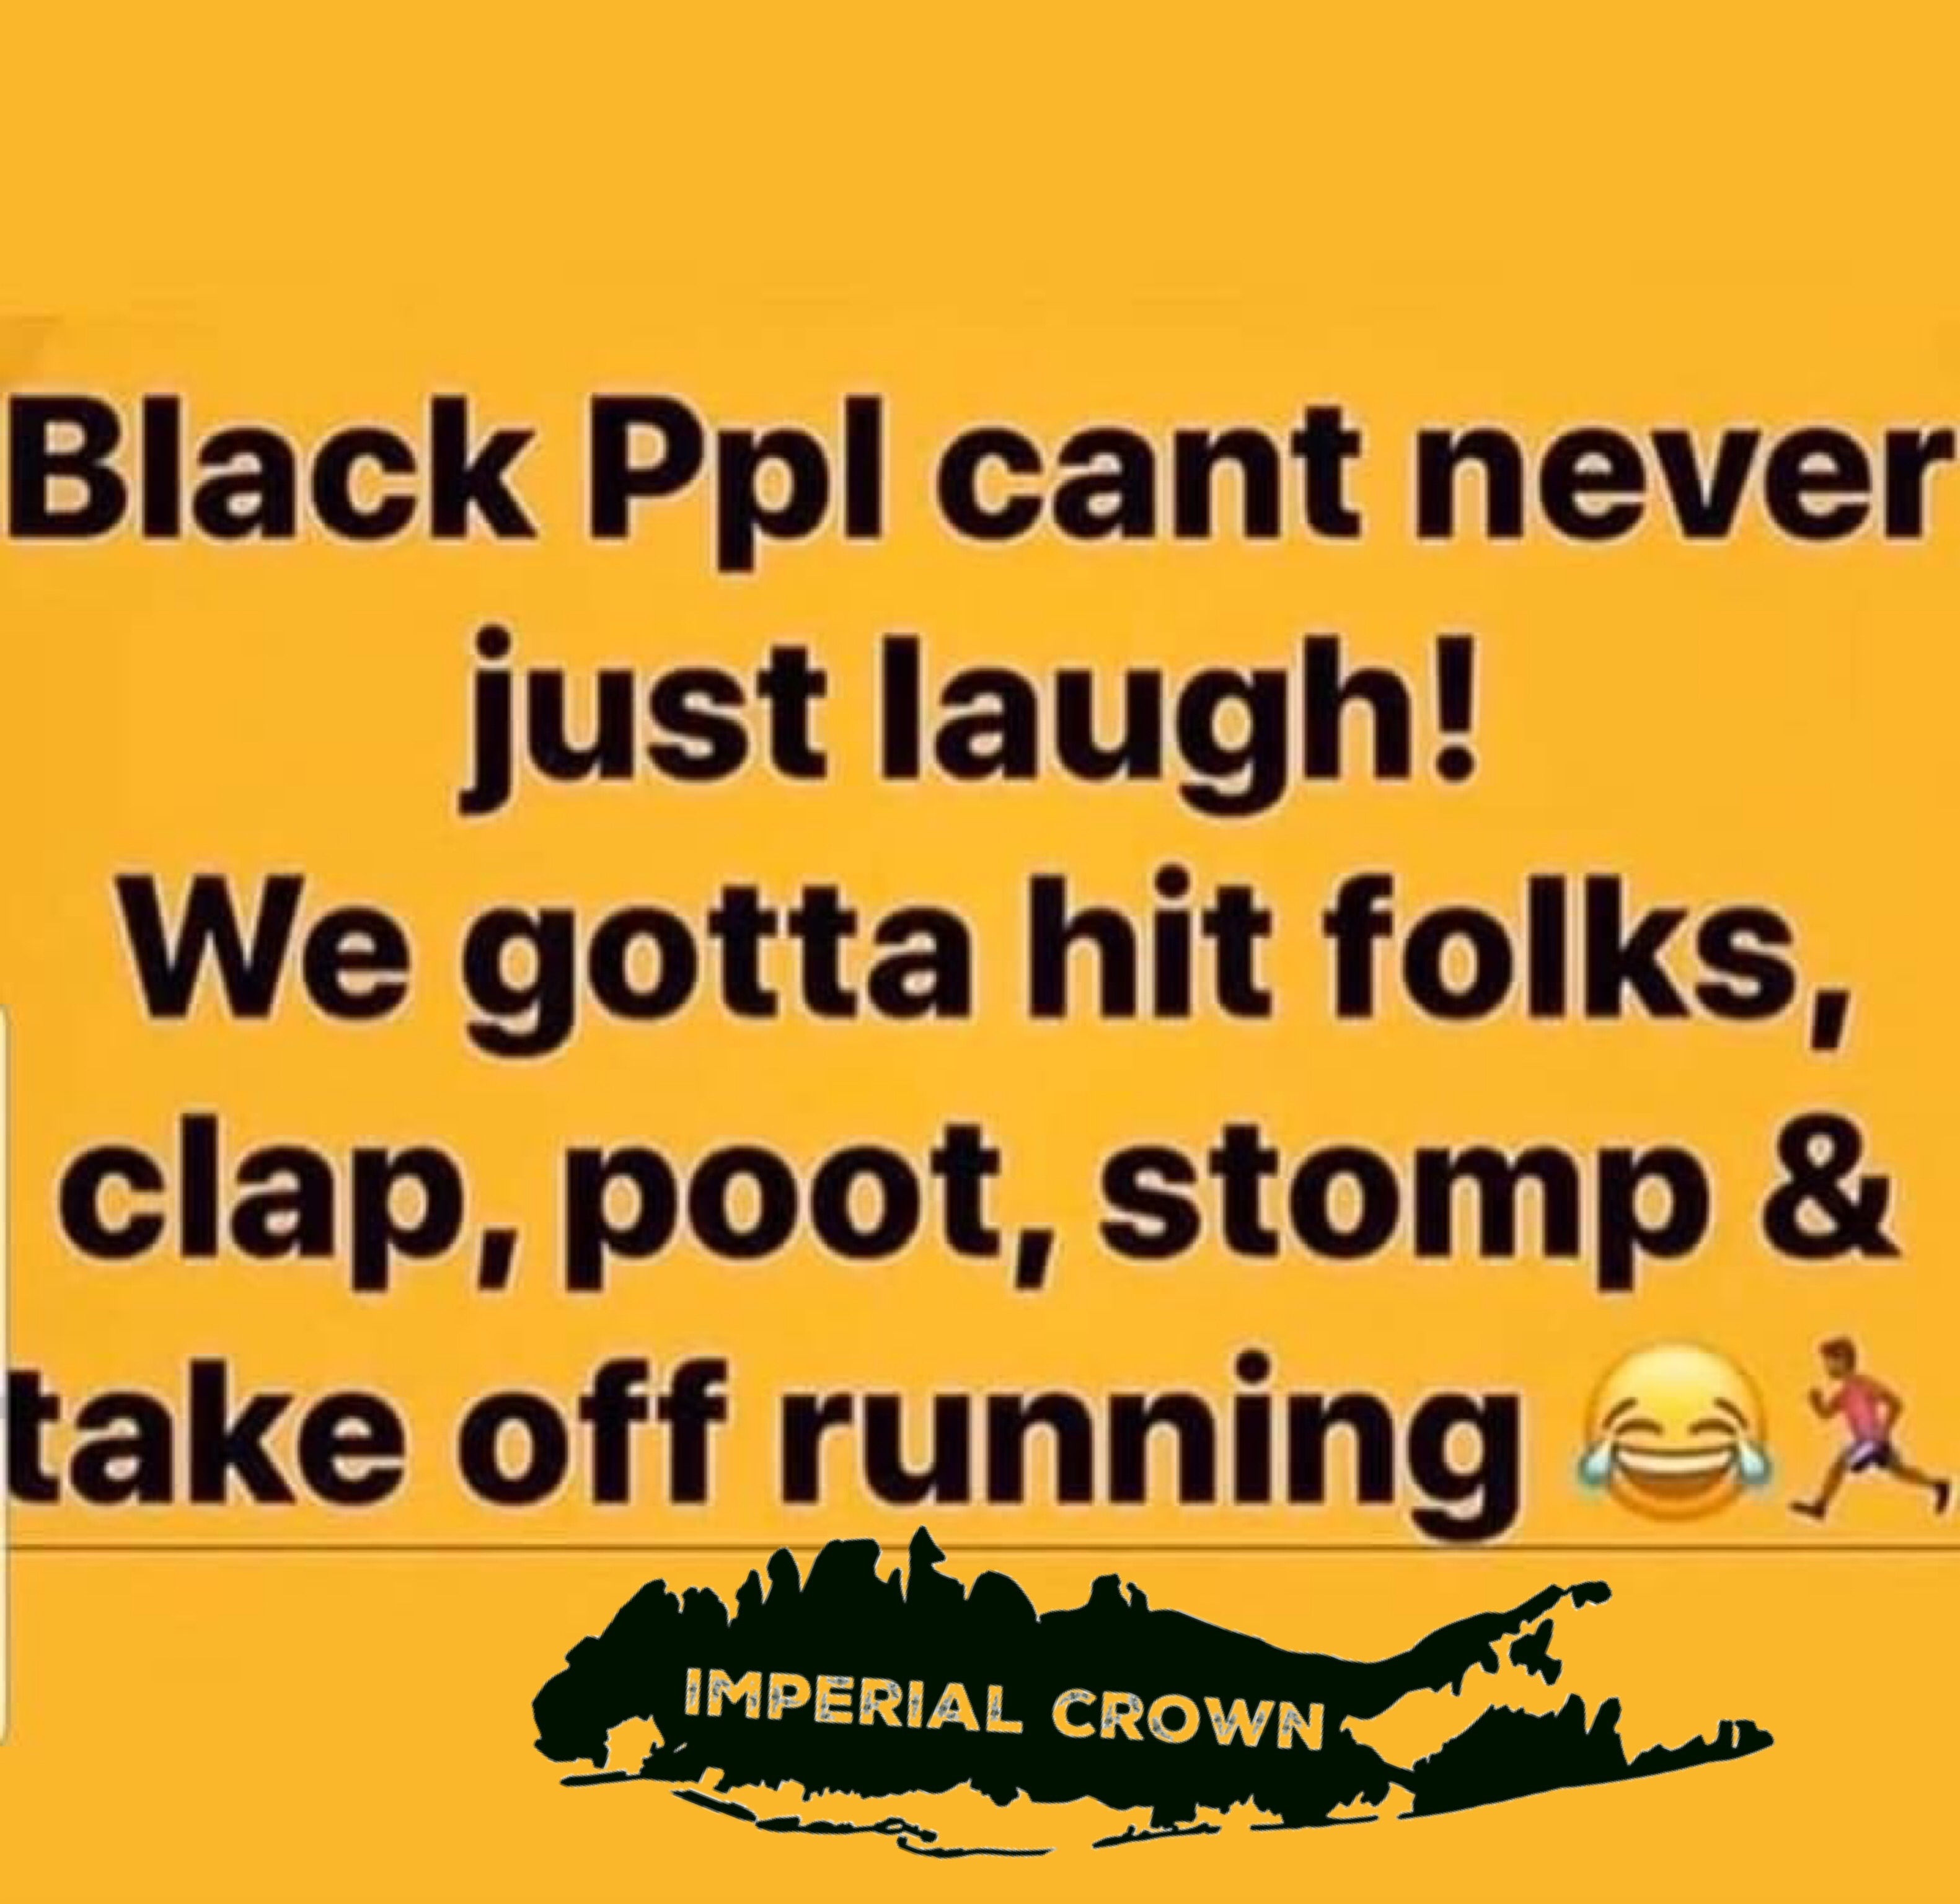 Black ppl can't never just laugh we gotta hit folks clap poor stomp & take off running